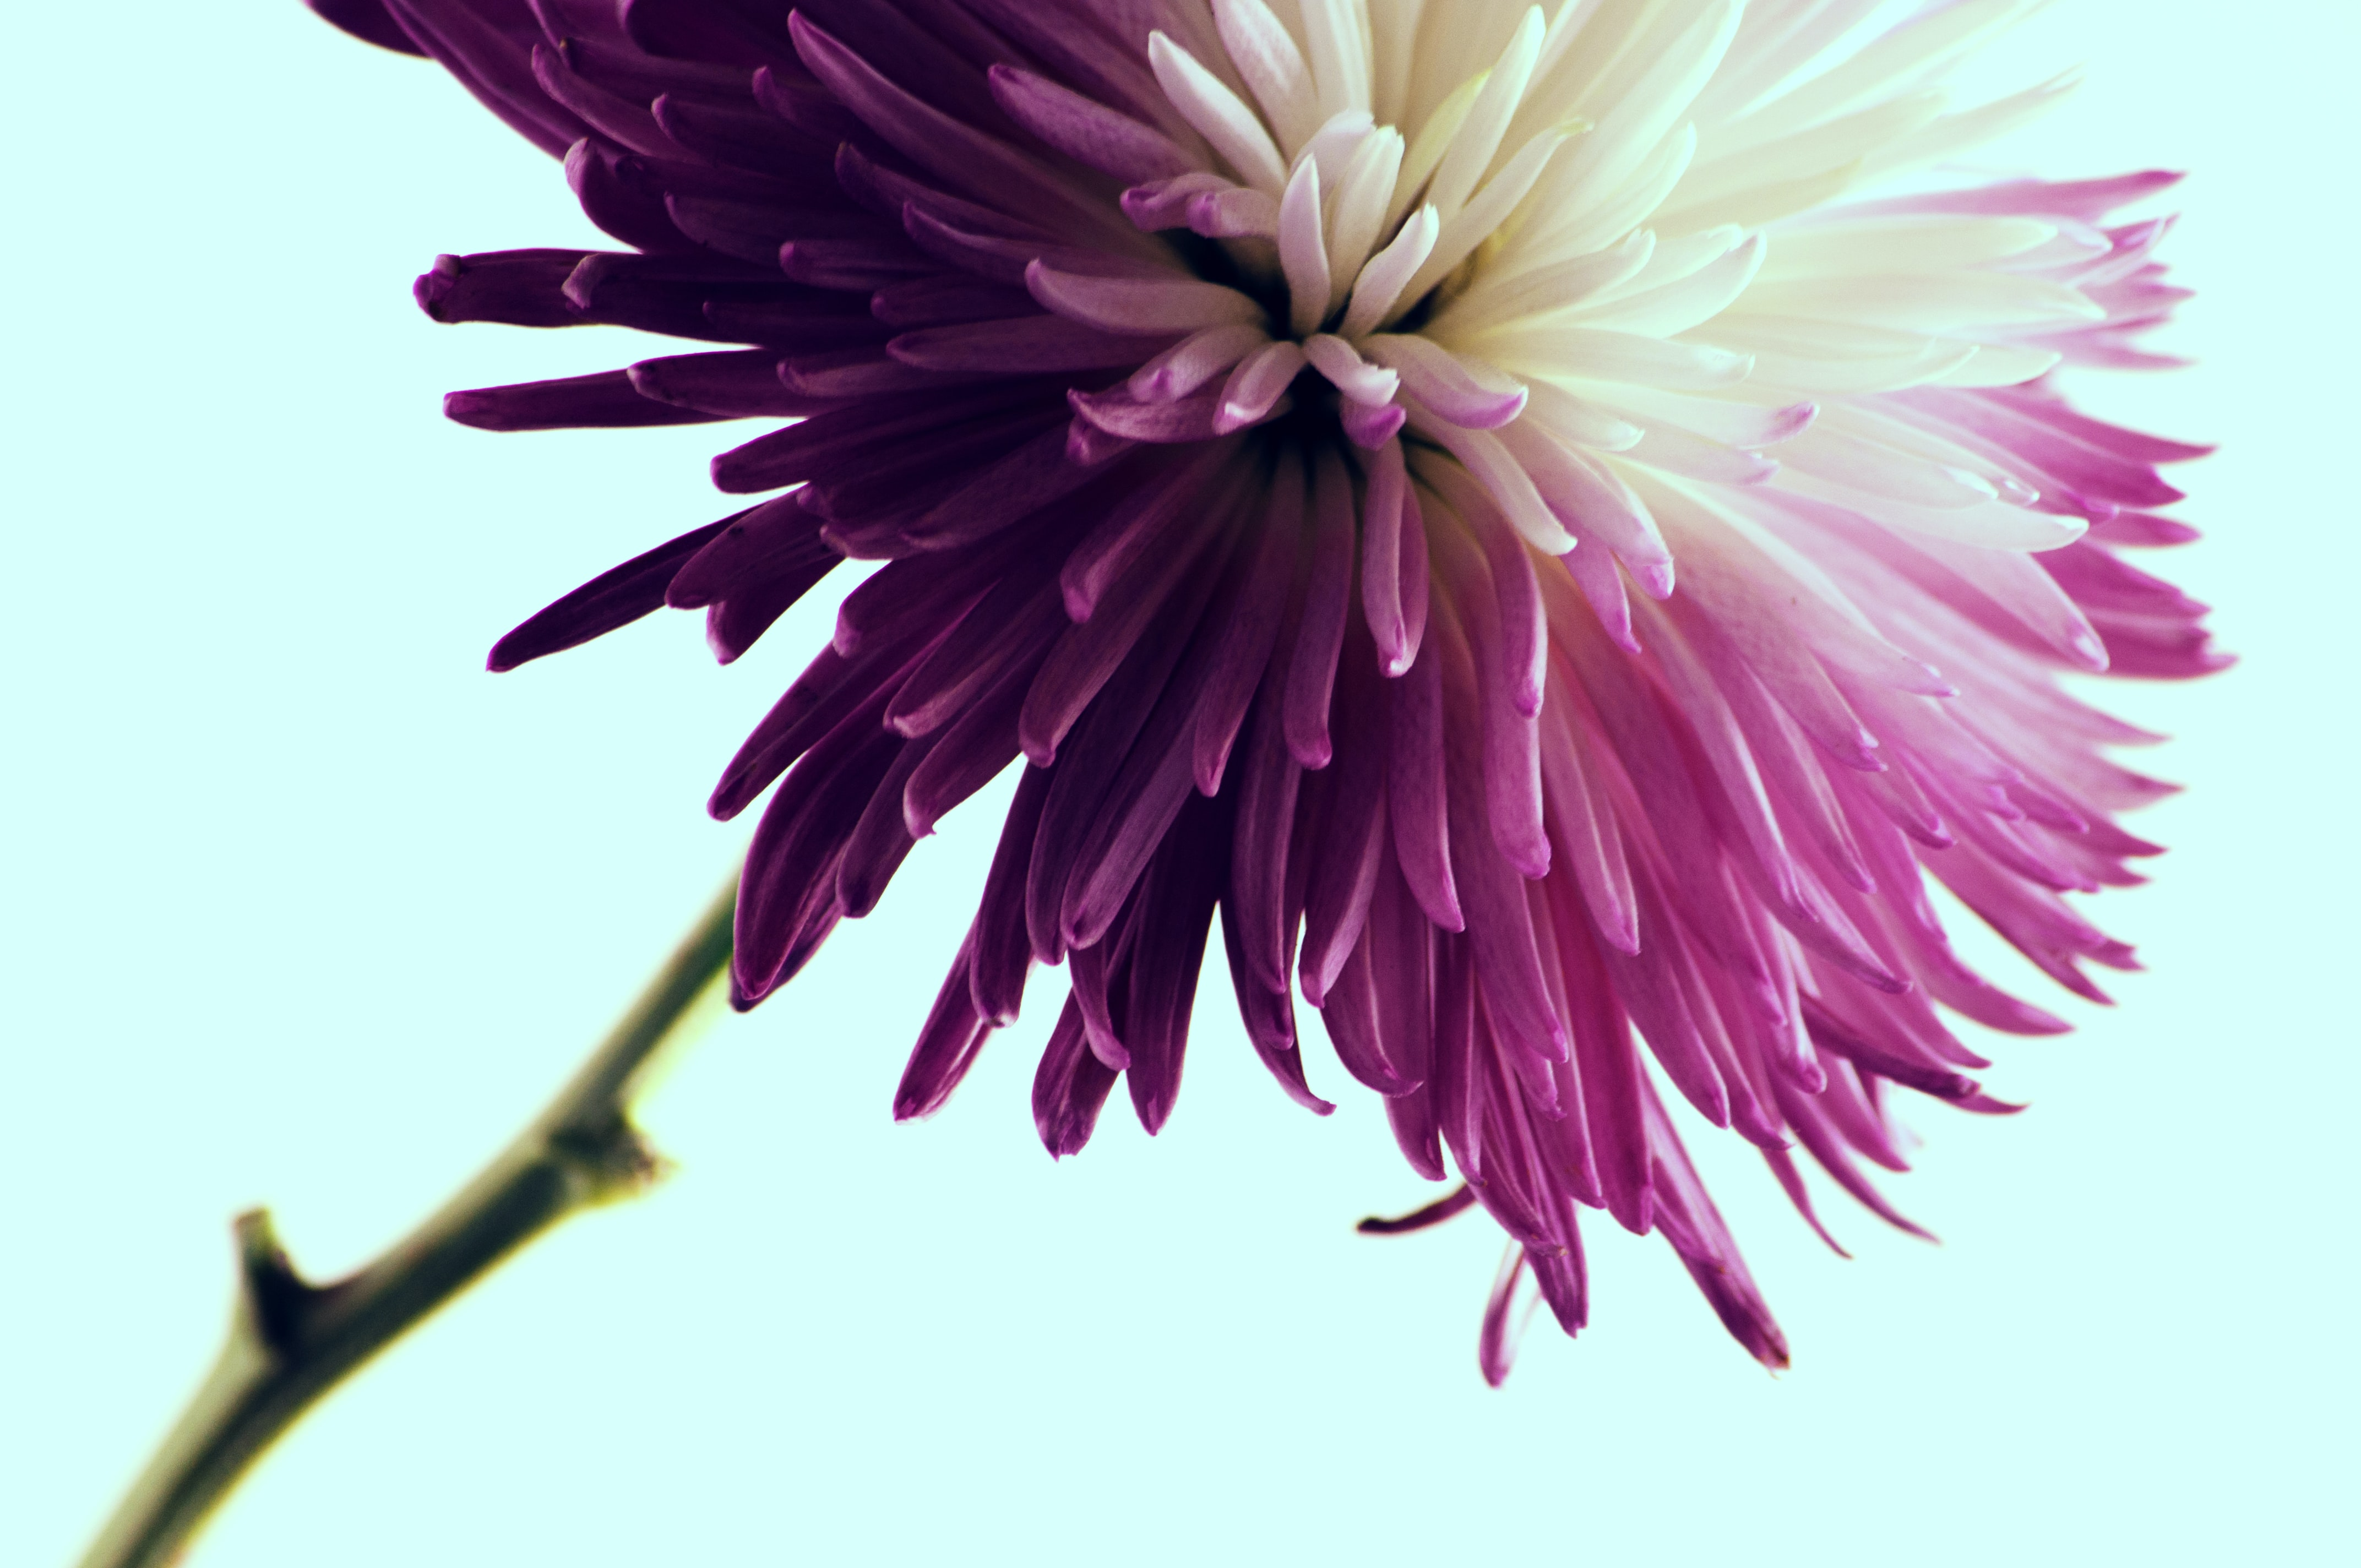 A macro shot of a purple dahlia flower with numerous long petals